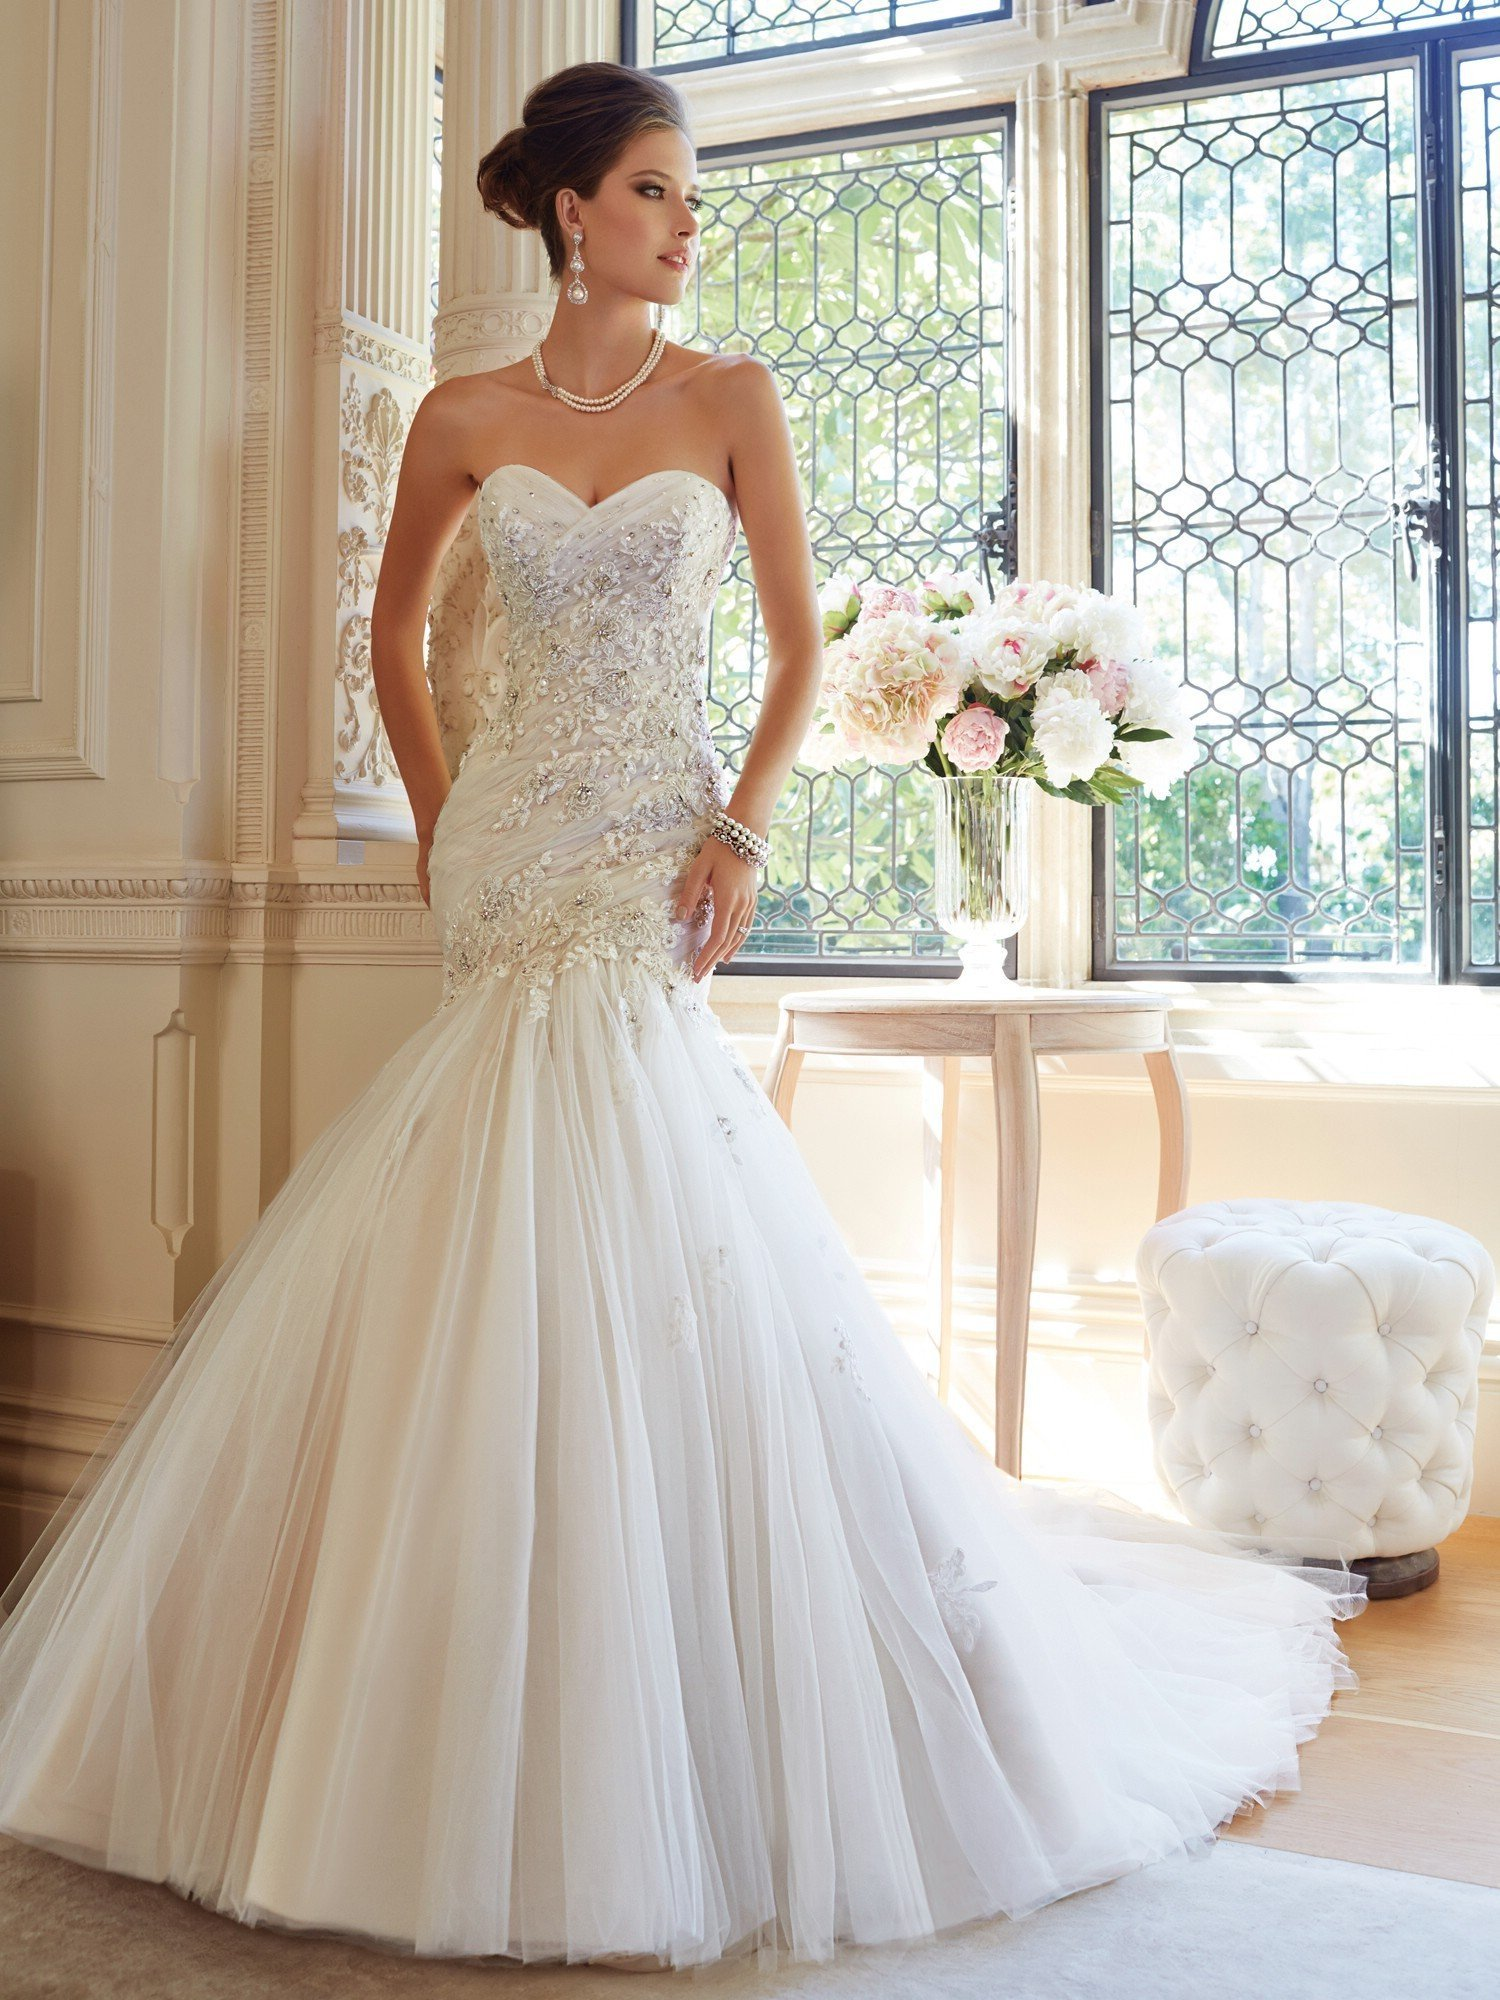 Most Expensive Wedding Dress In The World - Wedding and Bridal Inspiration